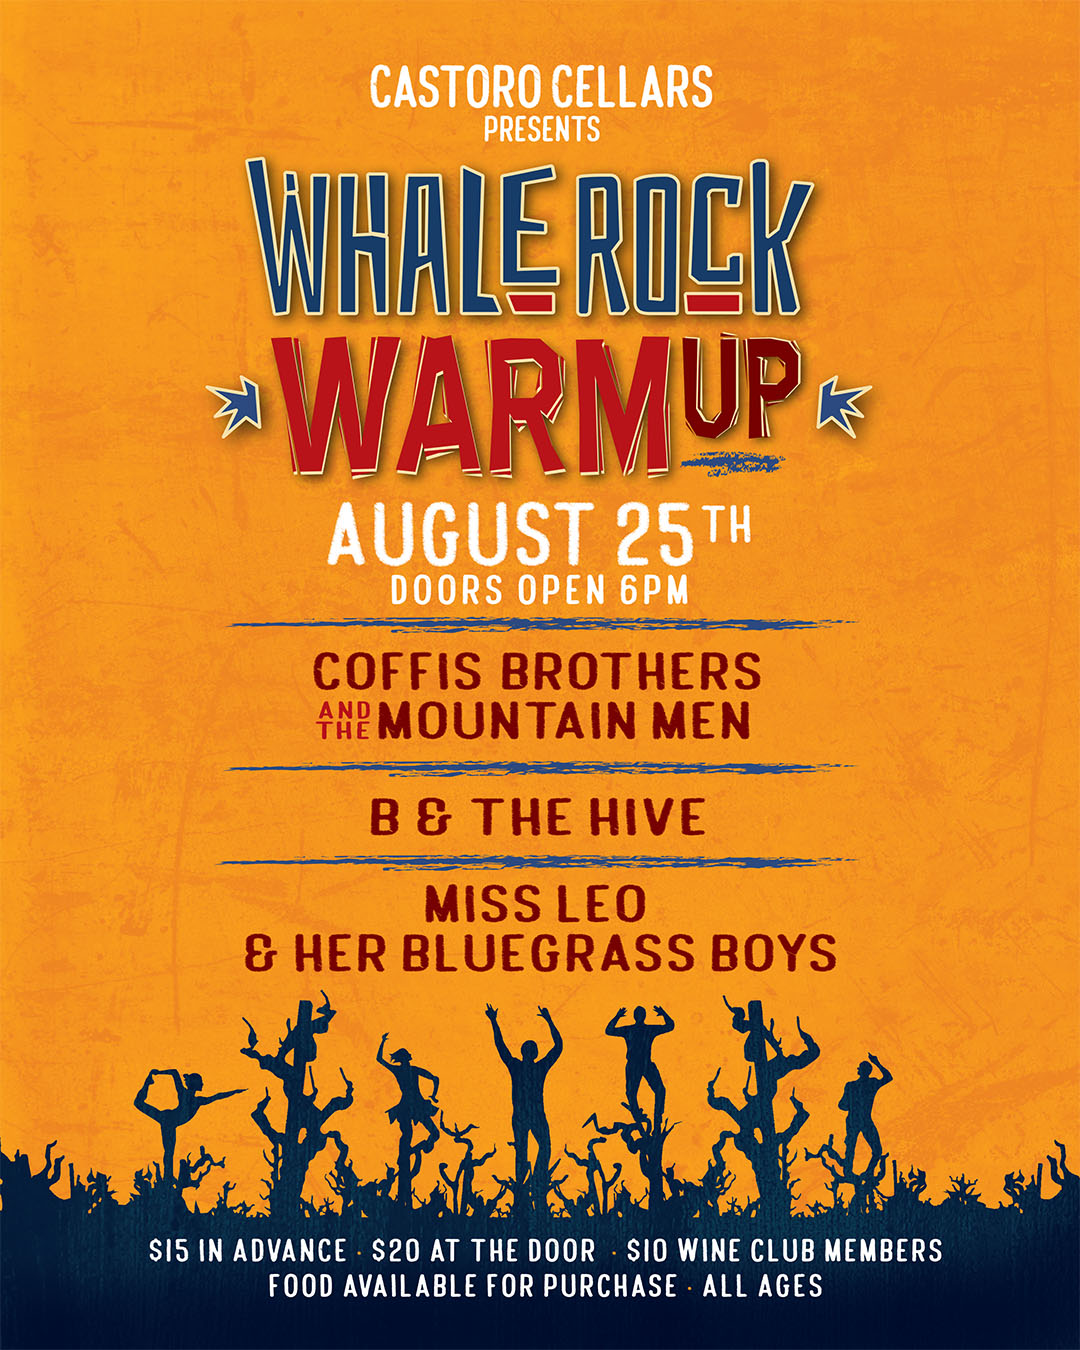 Whale Rock Warm Up Poster_IG_1080x1350px.jpg